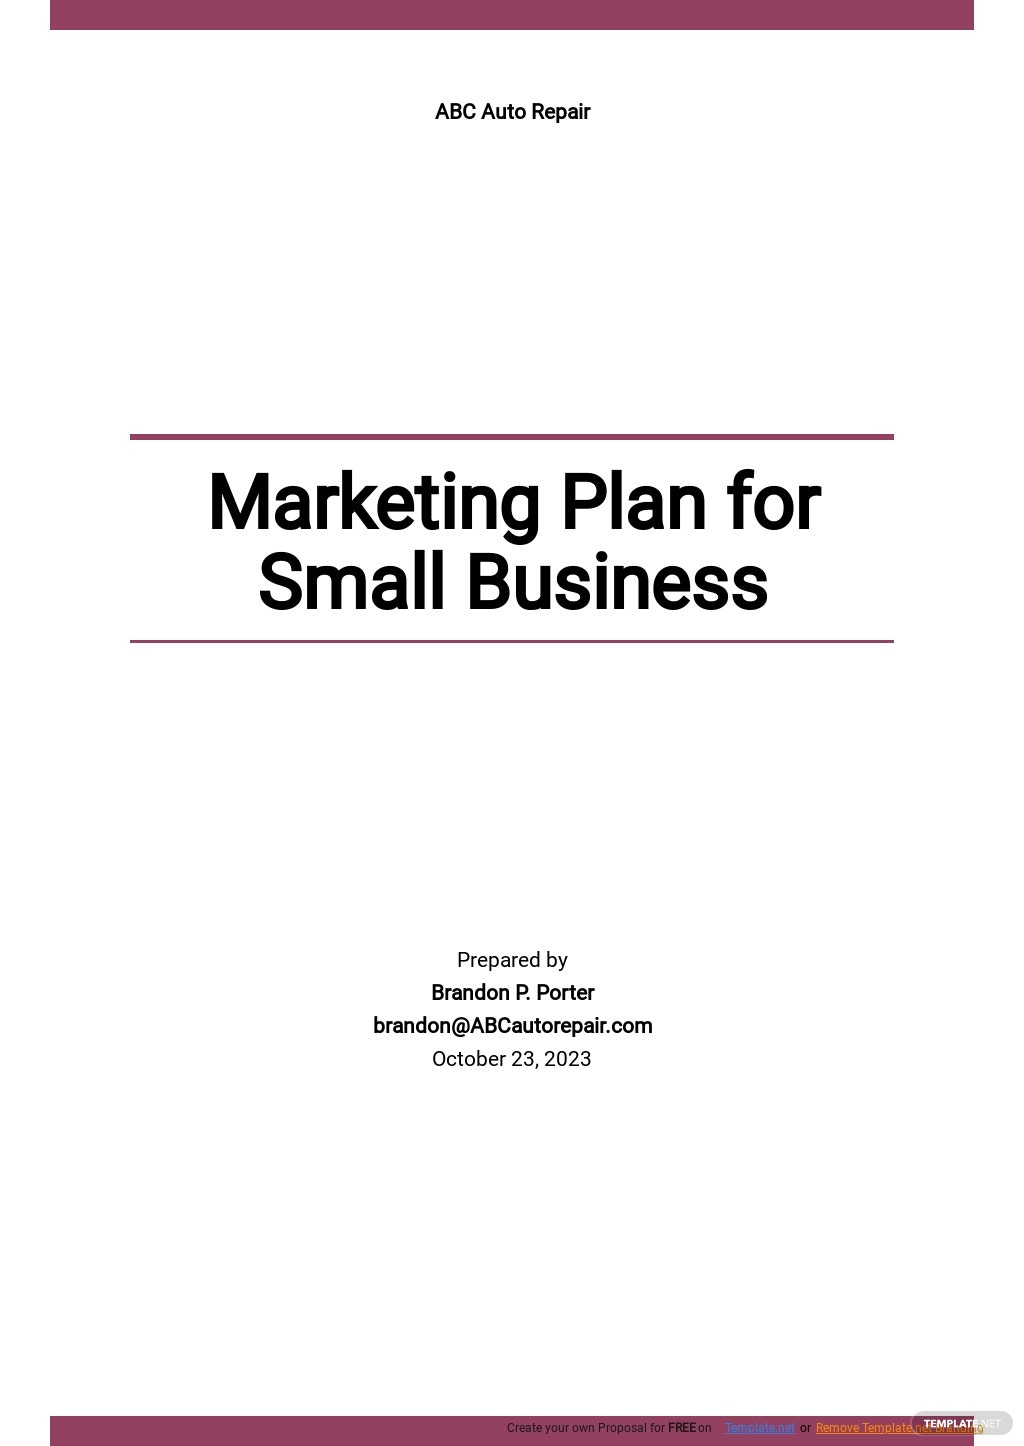 Simple Marketing Plan Template for Small Business.jpe